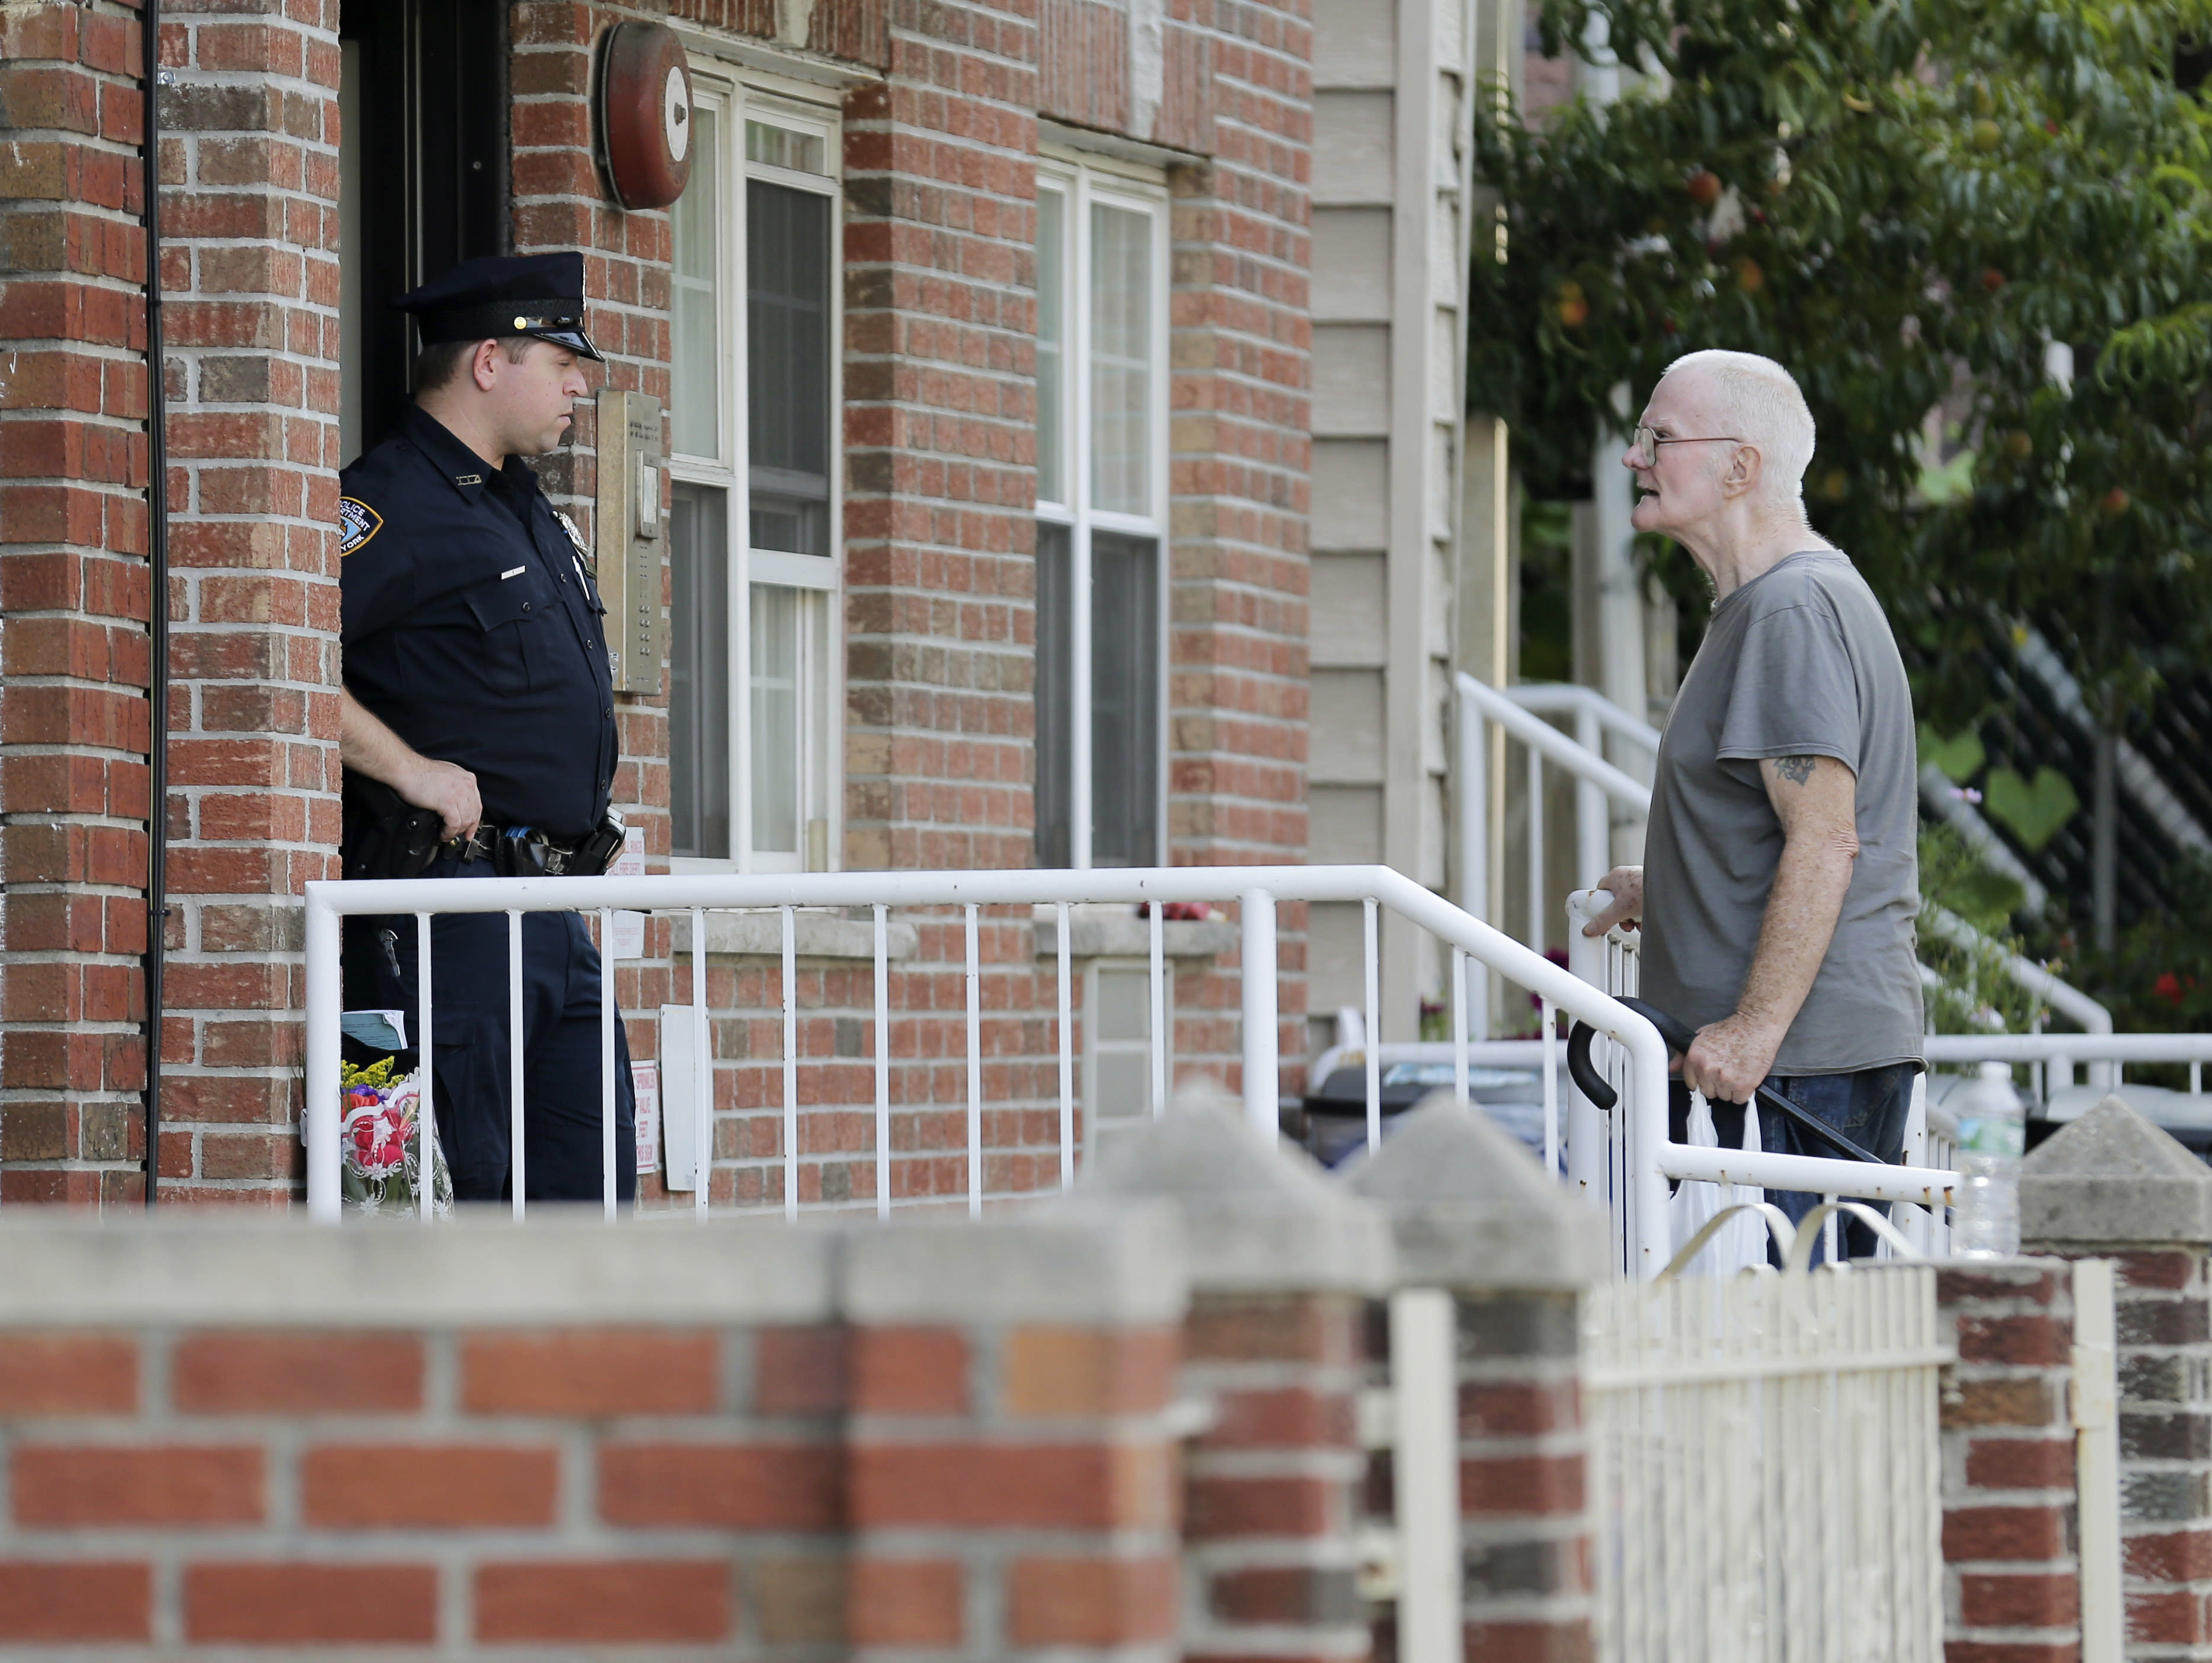 A police officer, left, talks with James Shields, Sr. in front a building where there was a shooting with multiple fatalities, including his son, in the Queens borough of New York, Tuesday, July 31, 2018. Police said the murder-suicide that left at least four people dead in New York City, may have stemmed from a trans-Atlantic custody fight. (AP Photo/Seth Wenig)